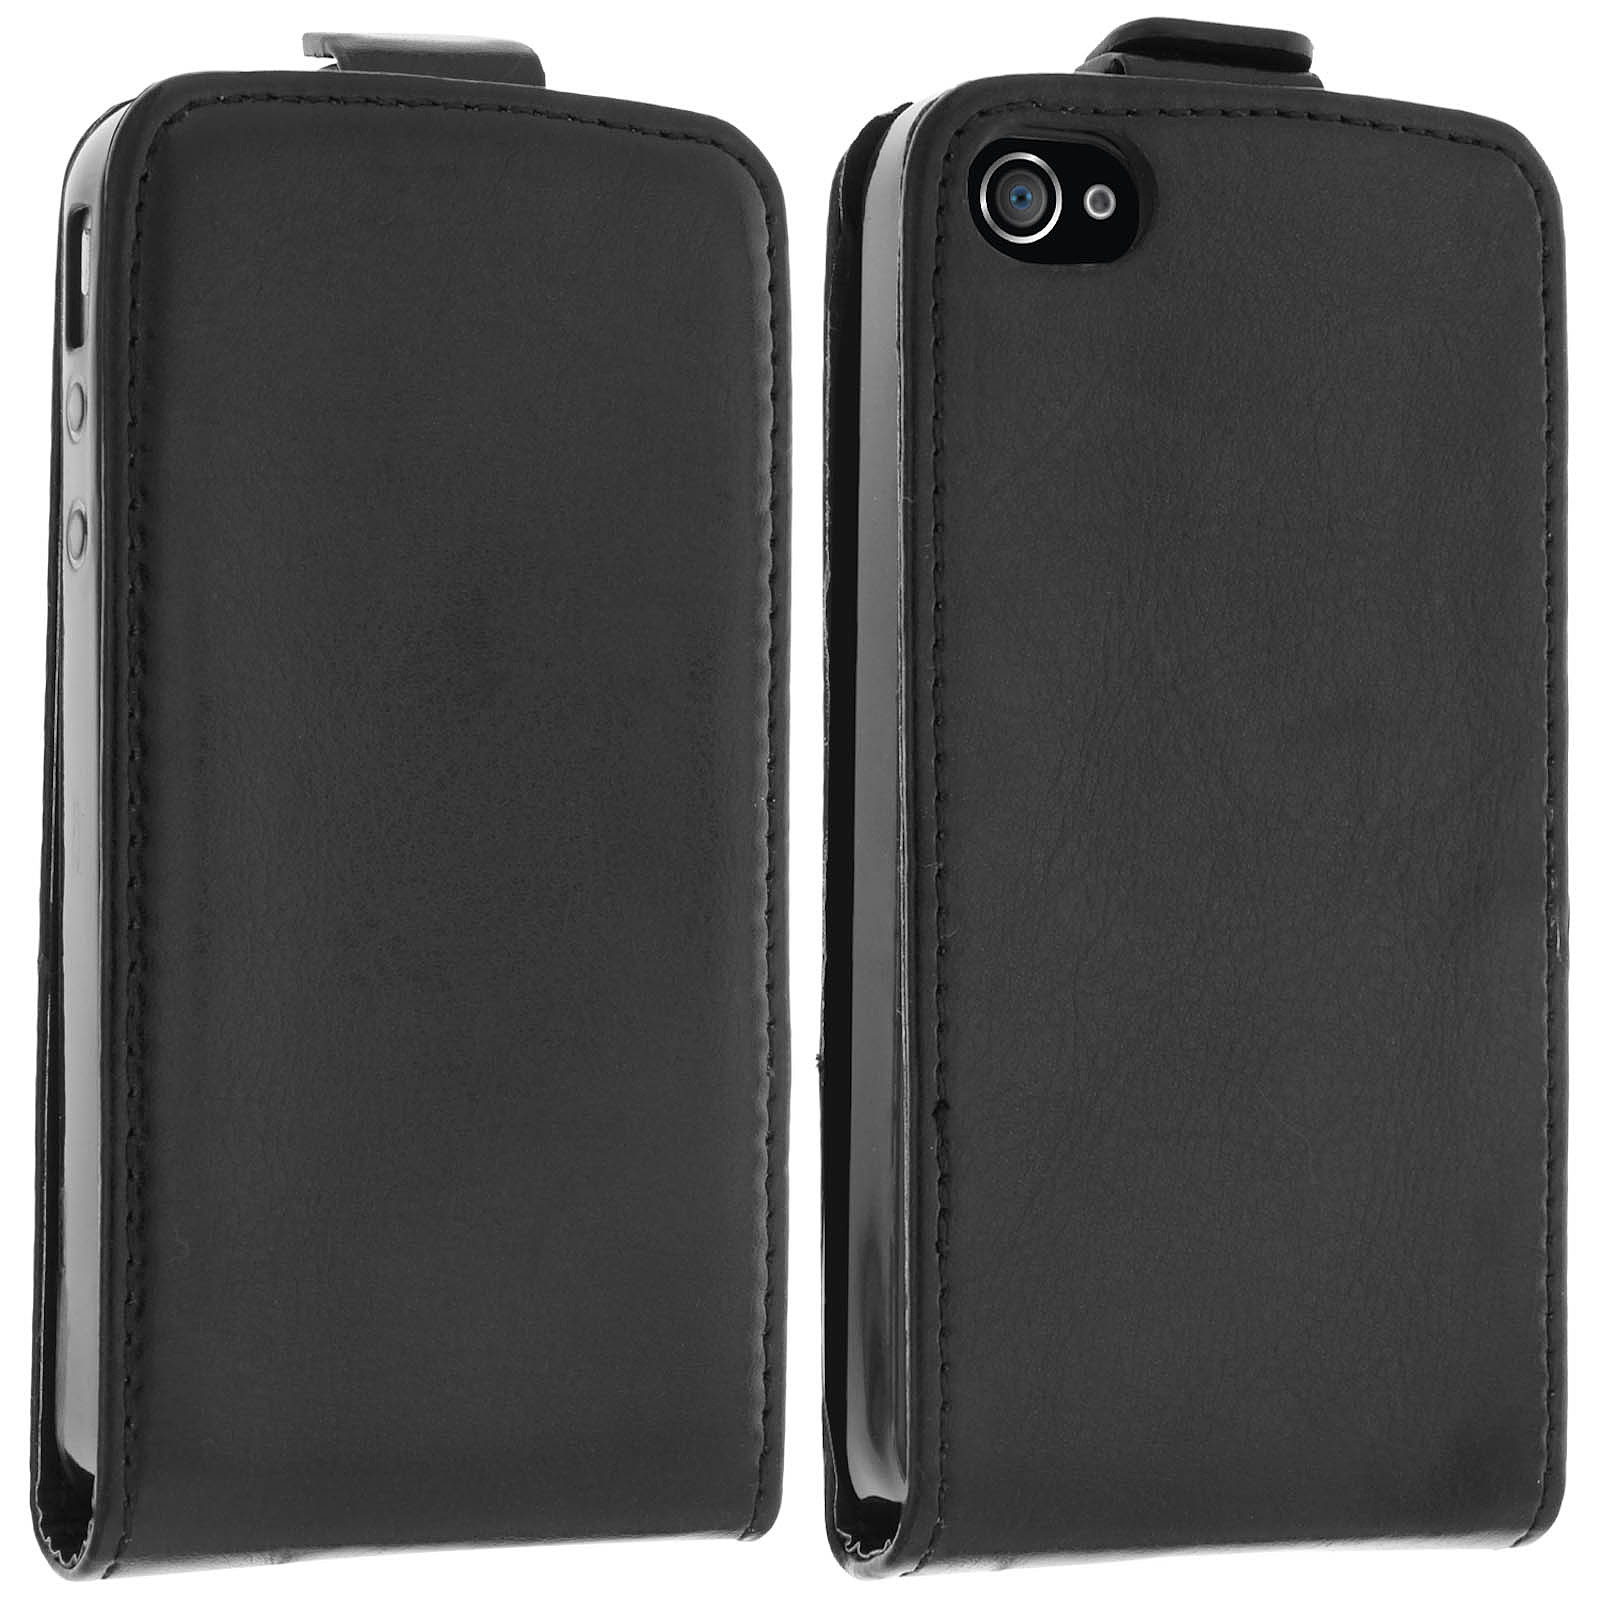 Avizar Etui à clapet Noir pour Apple iPhone 4 , Apple iPhone 4S